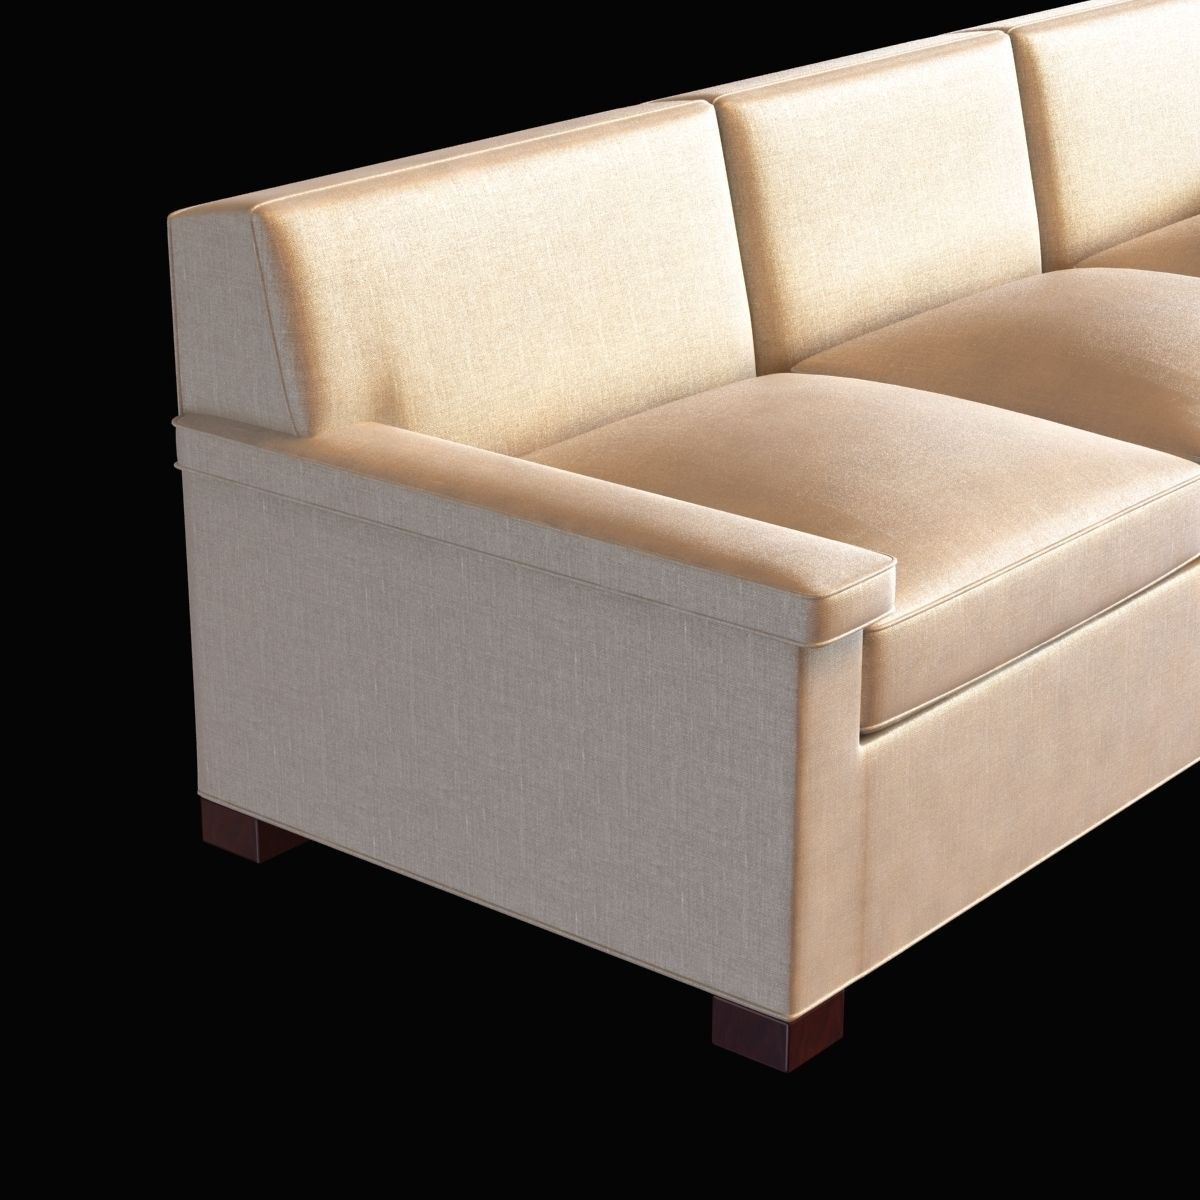 Anthony lawrence belfair contemporary char 3d model for Sofa bed 8101